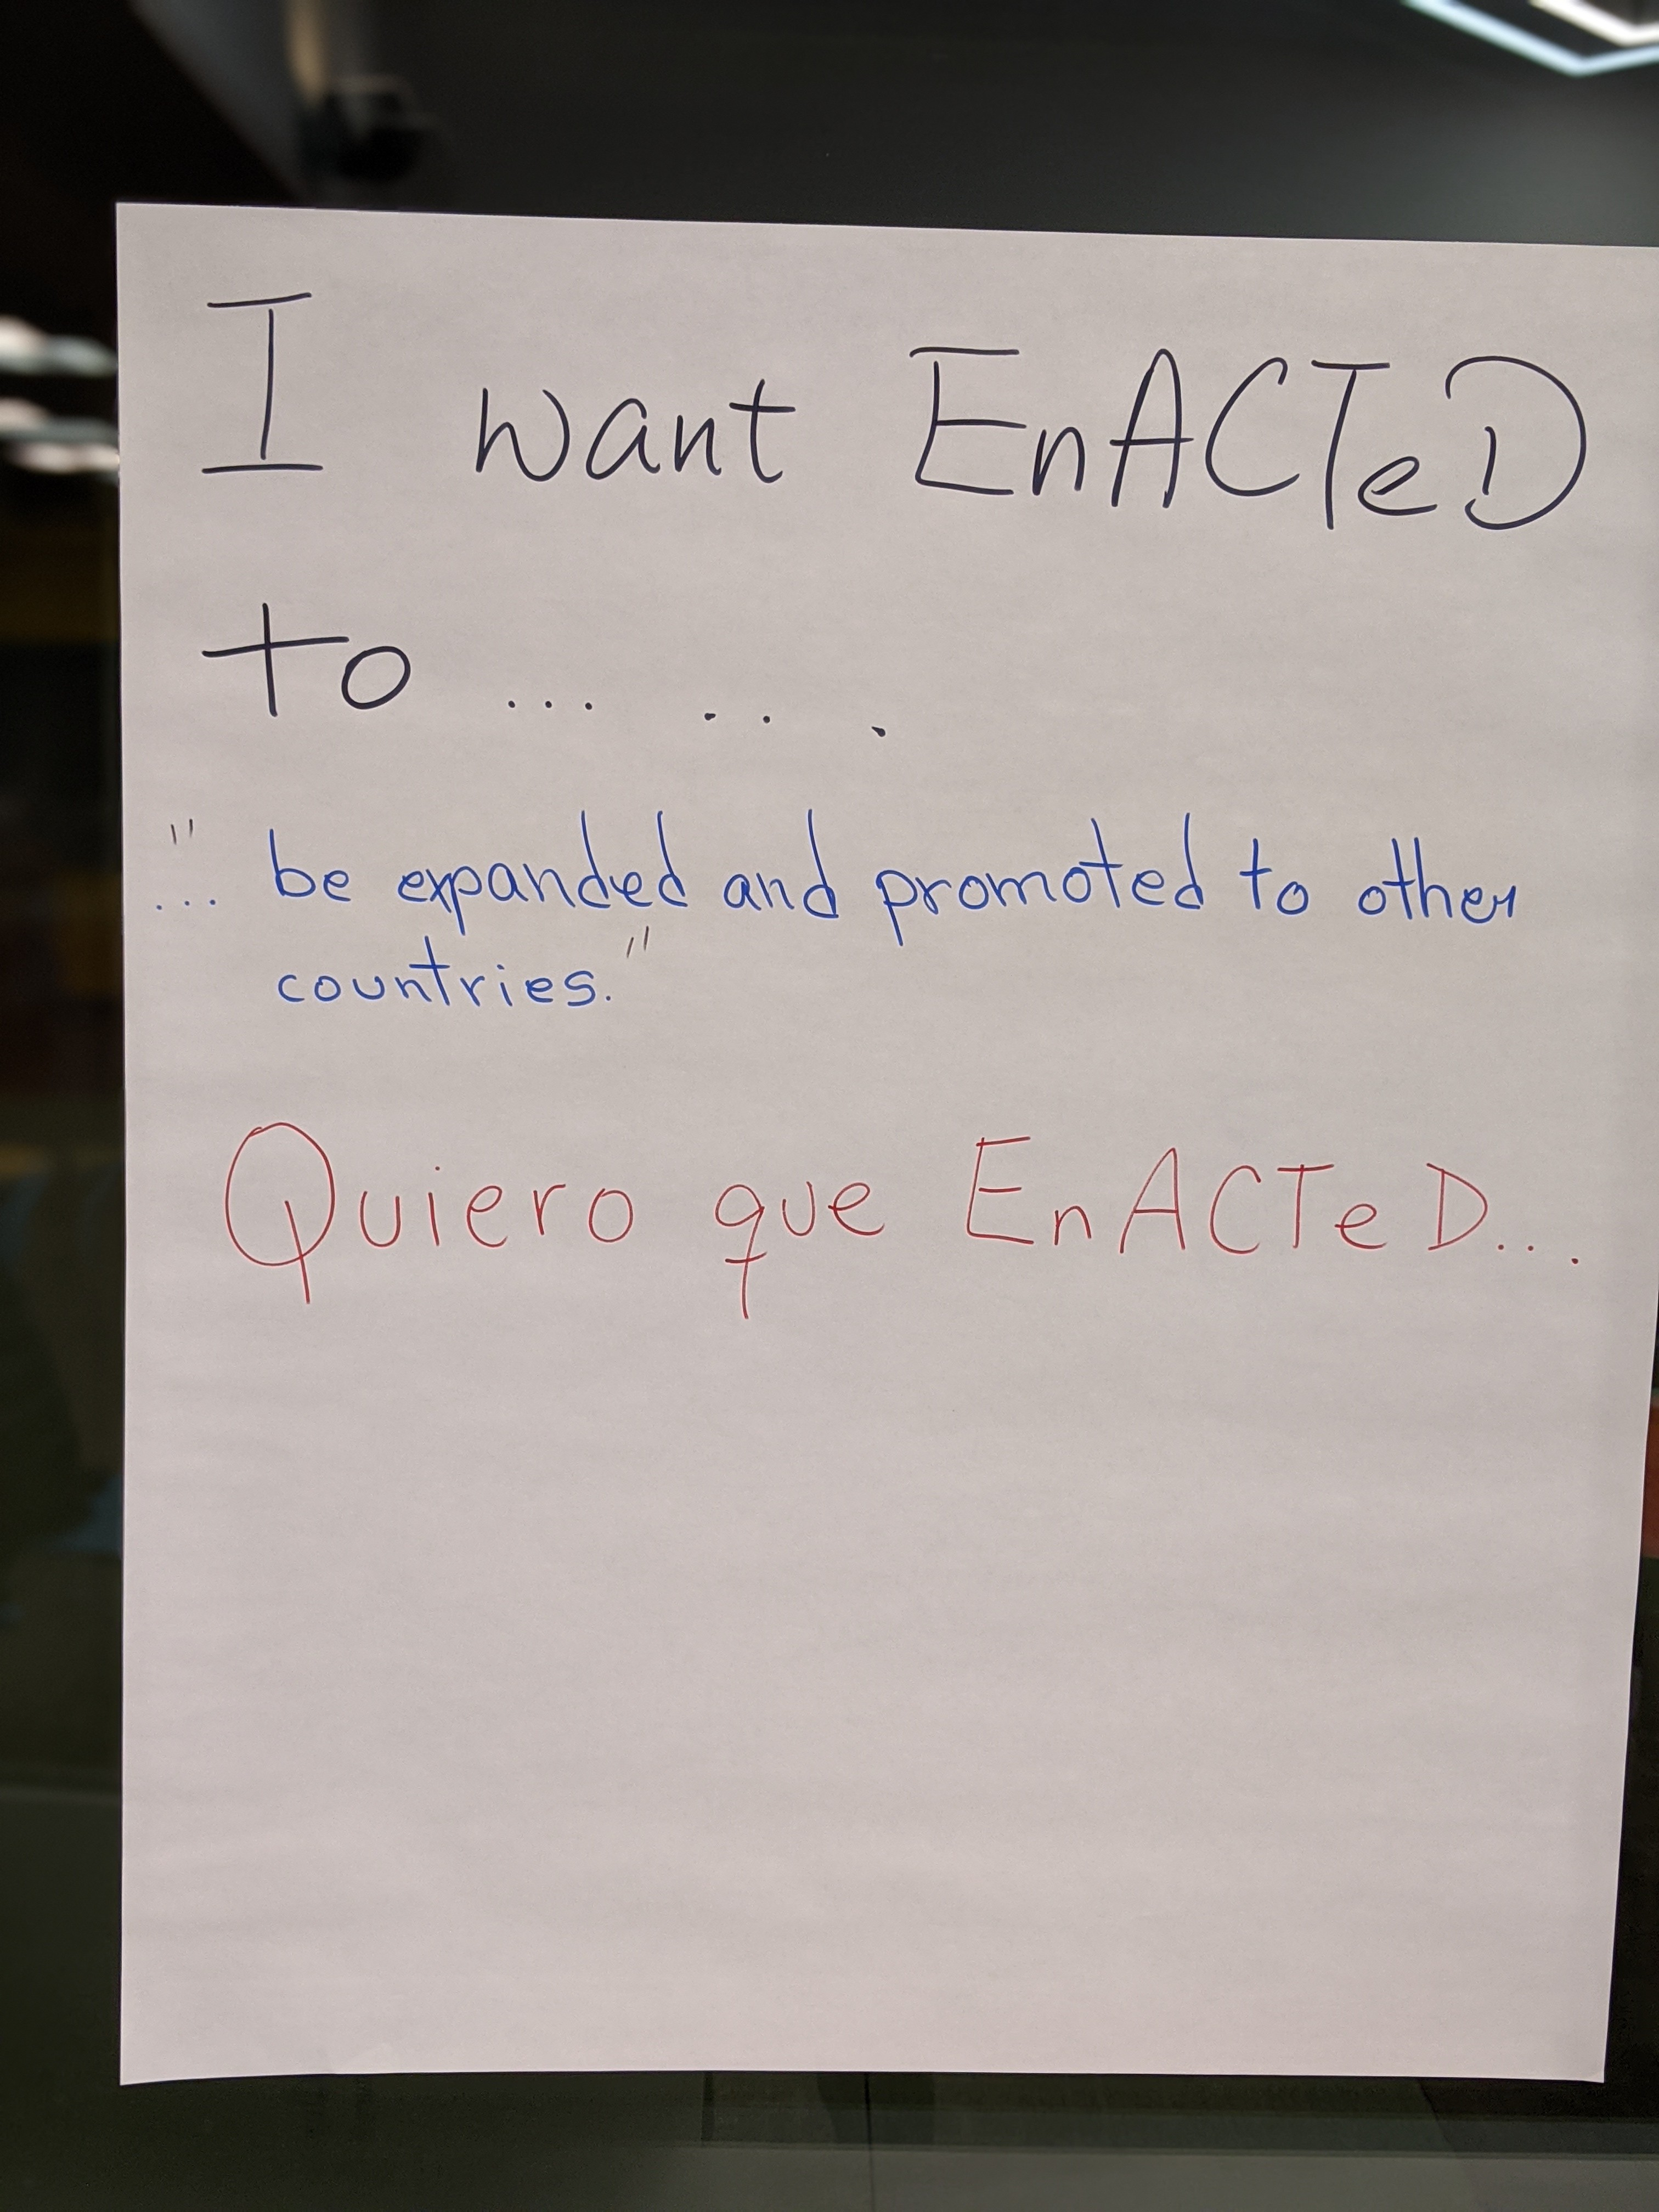 I Want EnACTeD To....